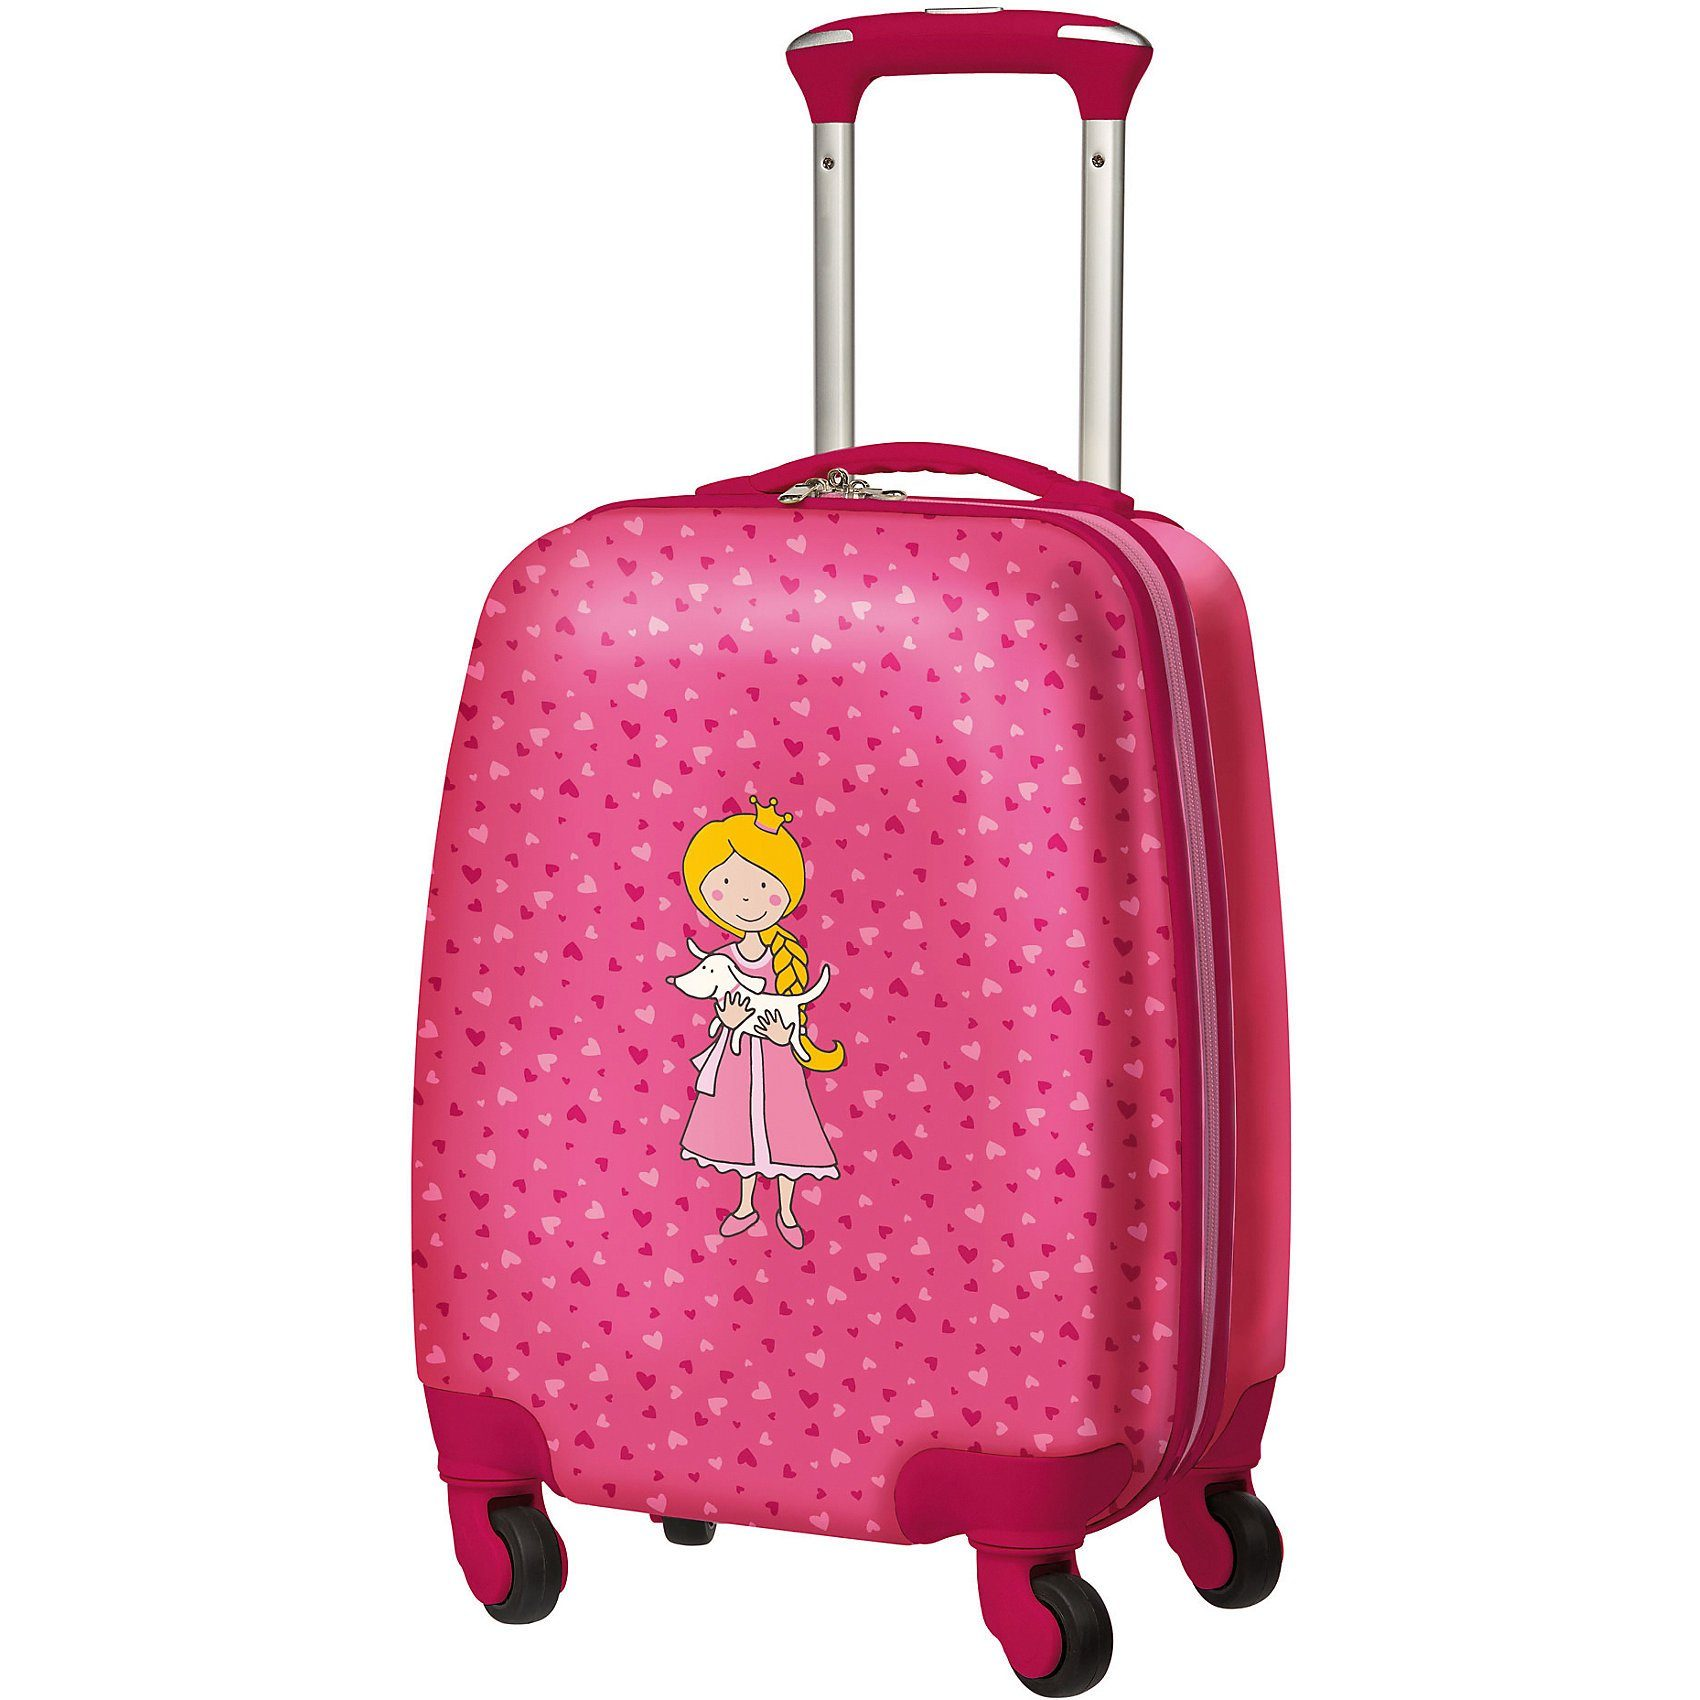 Trolley Kinderkoffer Sigikid Kindertrolley Pinky Queeny Online Kaufen | Otto